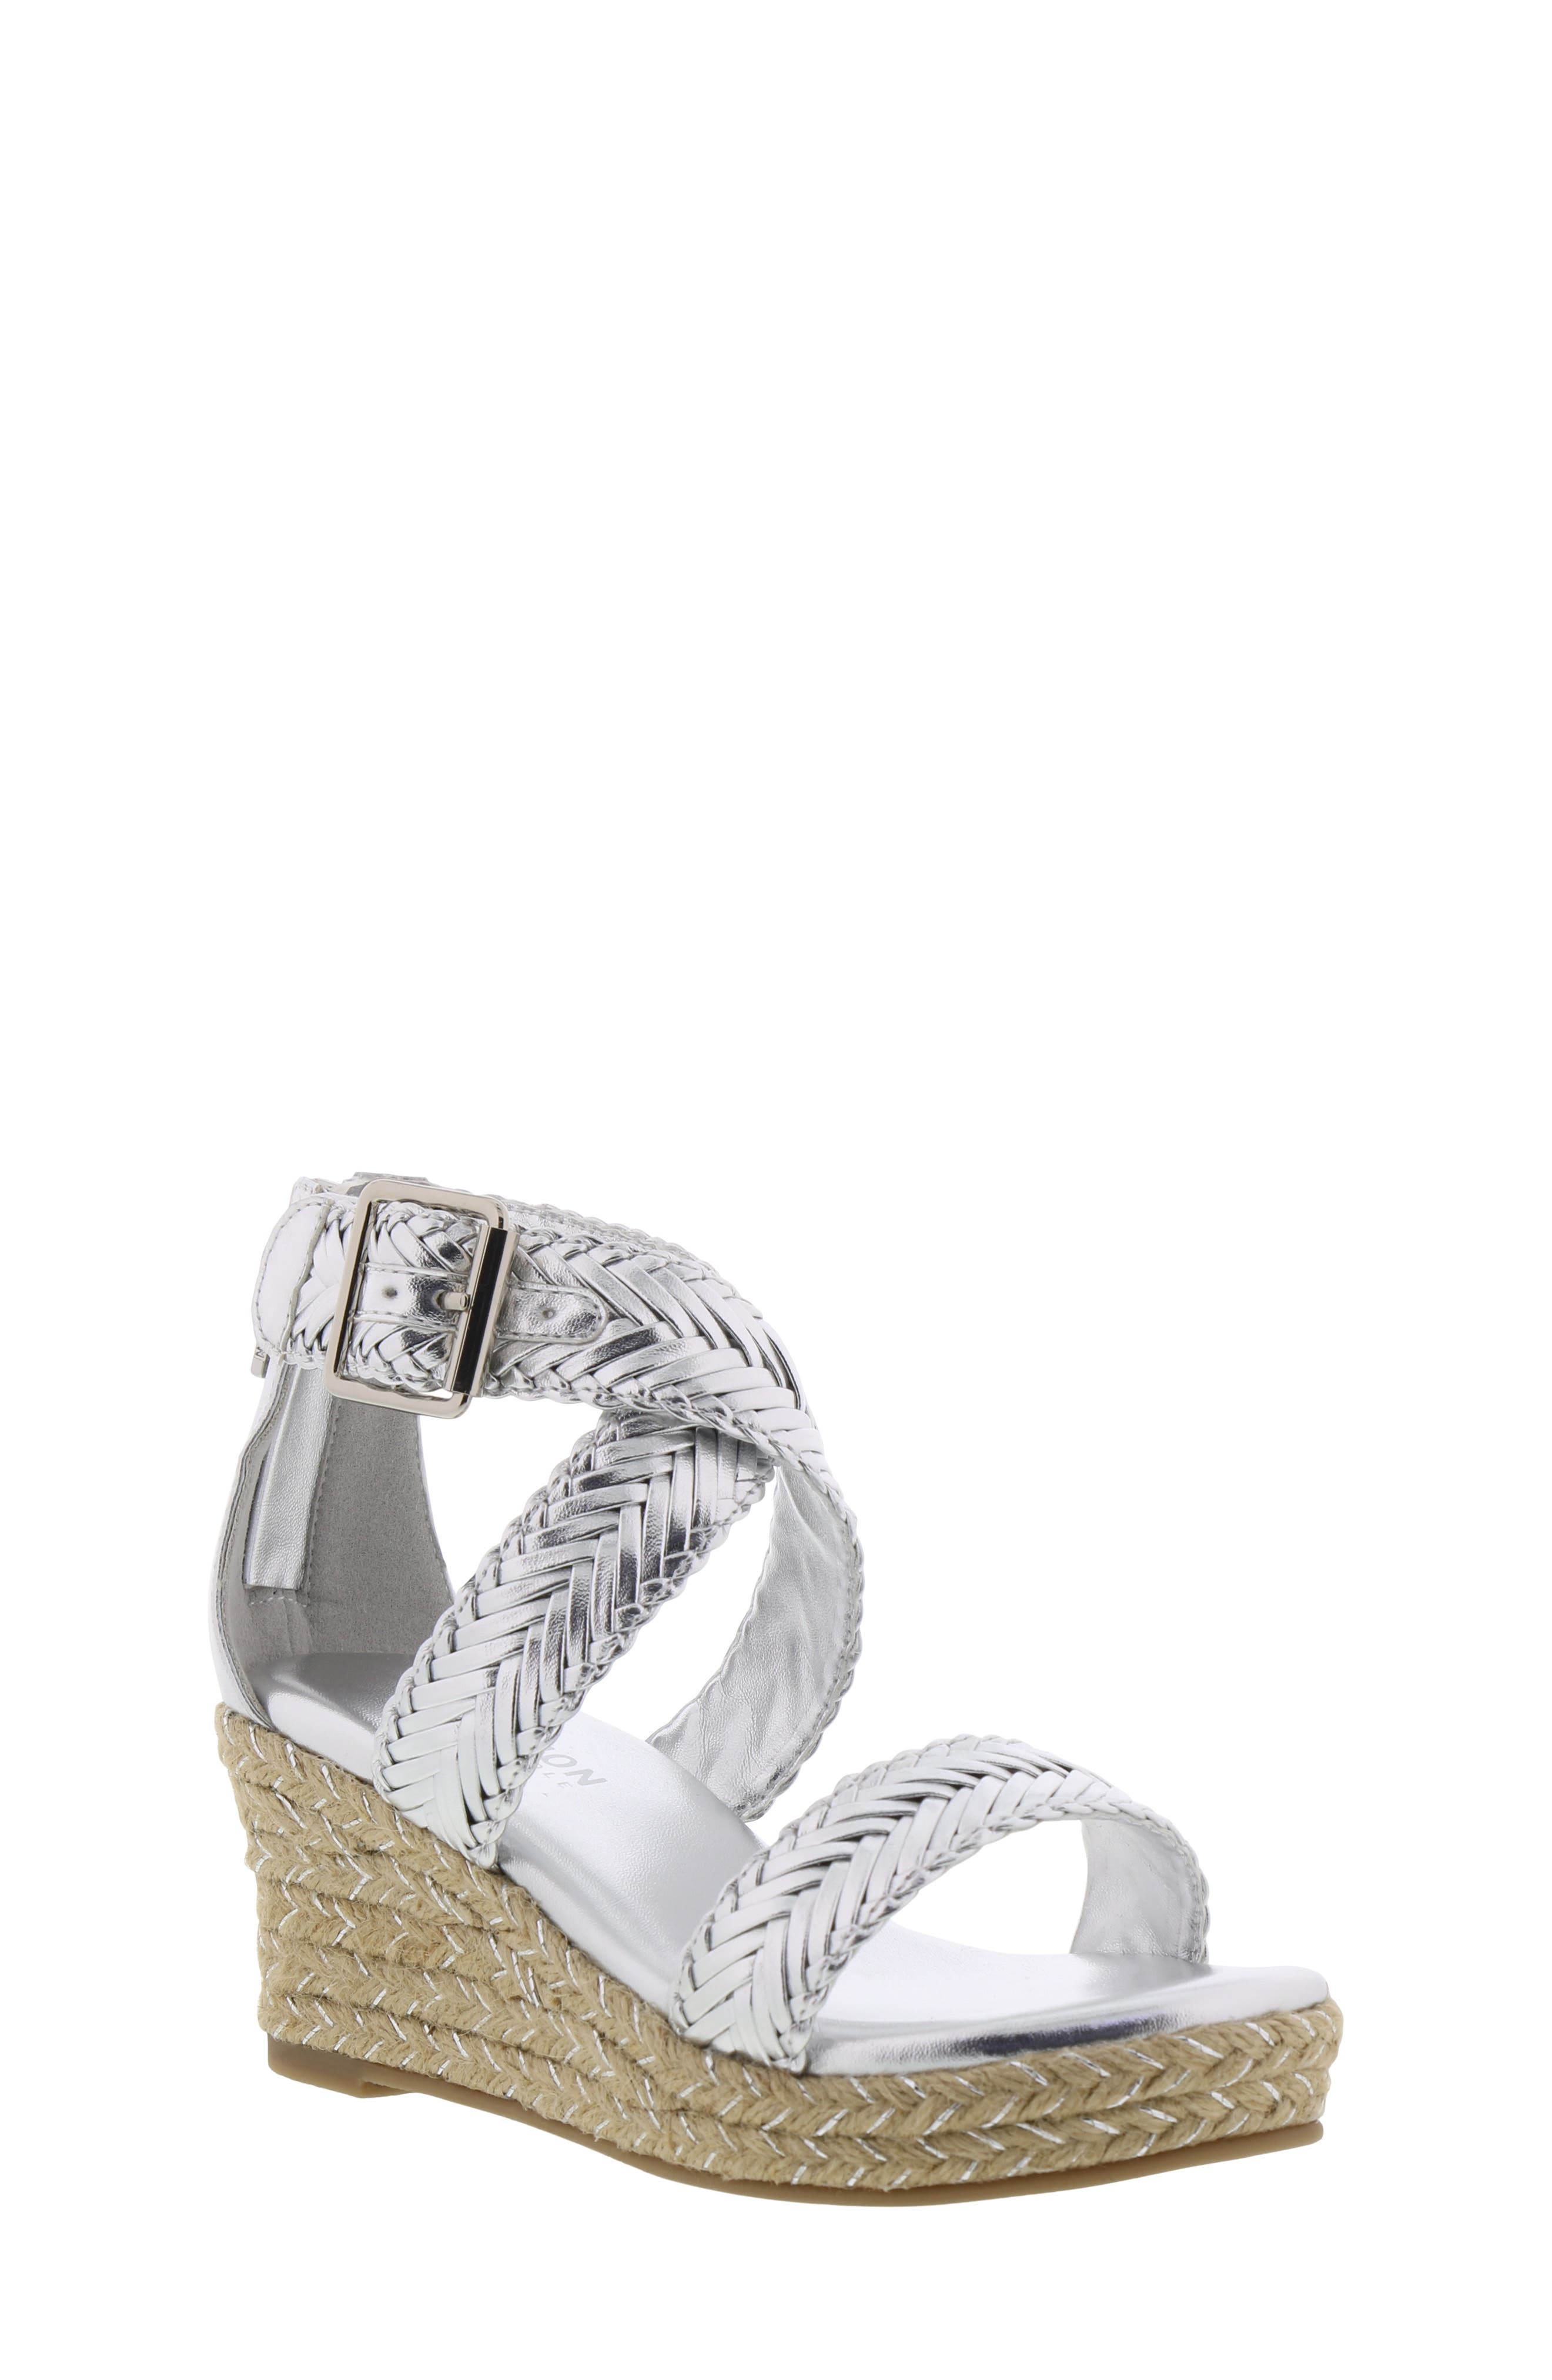 REACTION KENNETH COLE Reed Sway Metallic Wedge Sandal, Main, color, SILVER